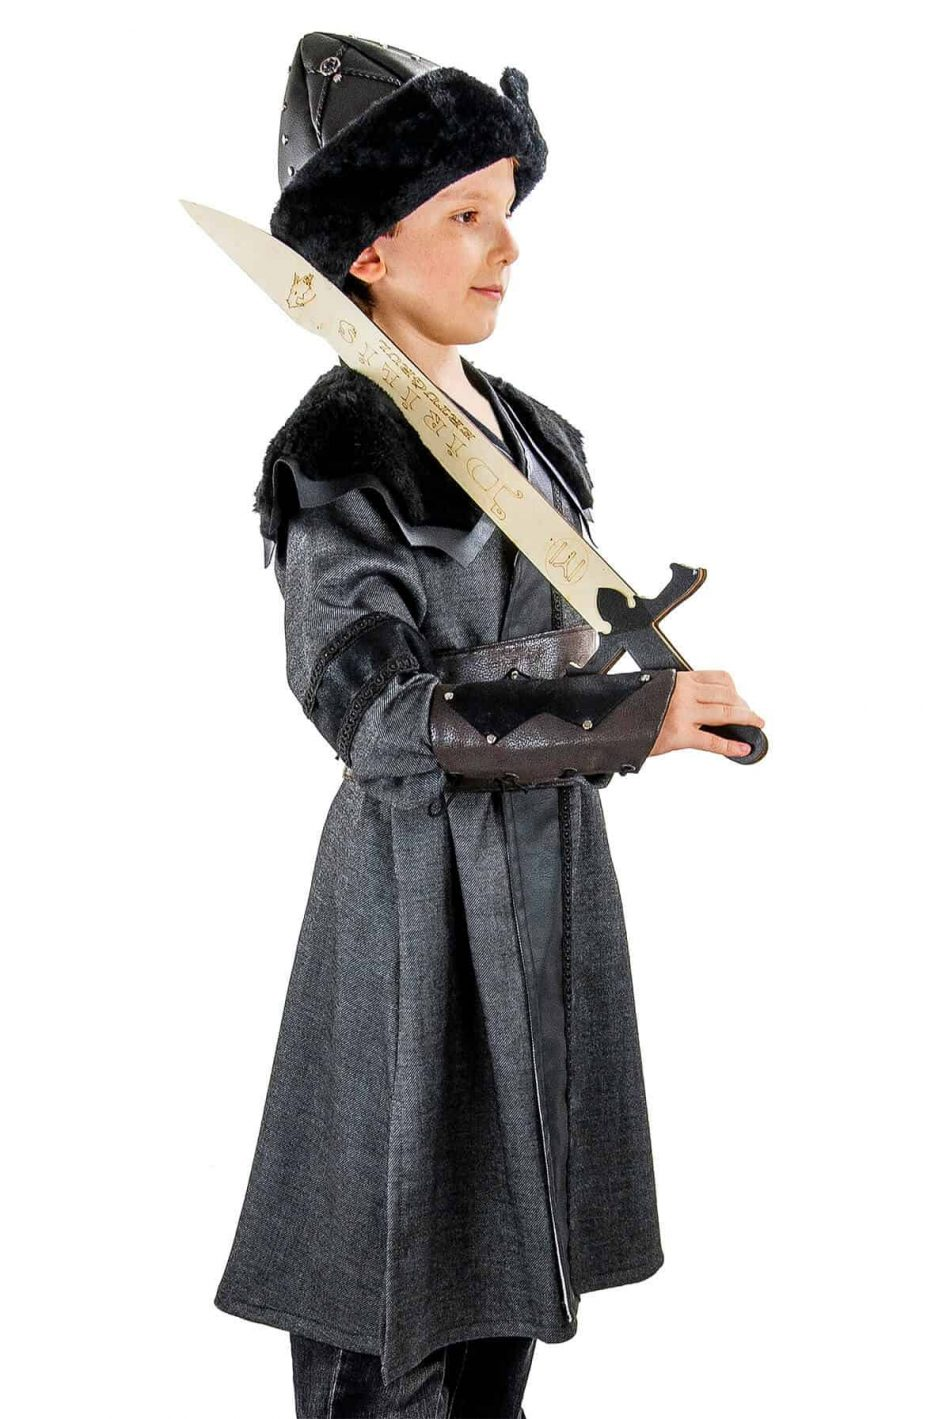 Resurrection Ertugrul Costume Alp Outfit For Children DC 106 04 1 950x1419 - Ertugrul Costume Alp Outfit For Children